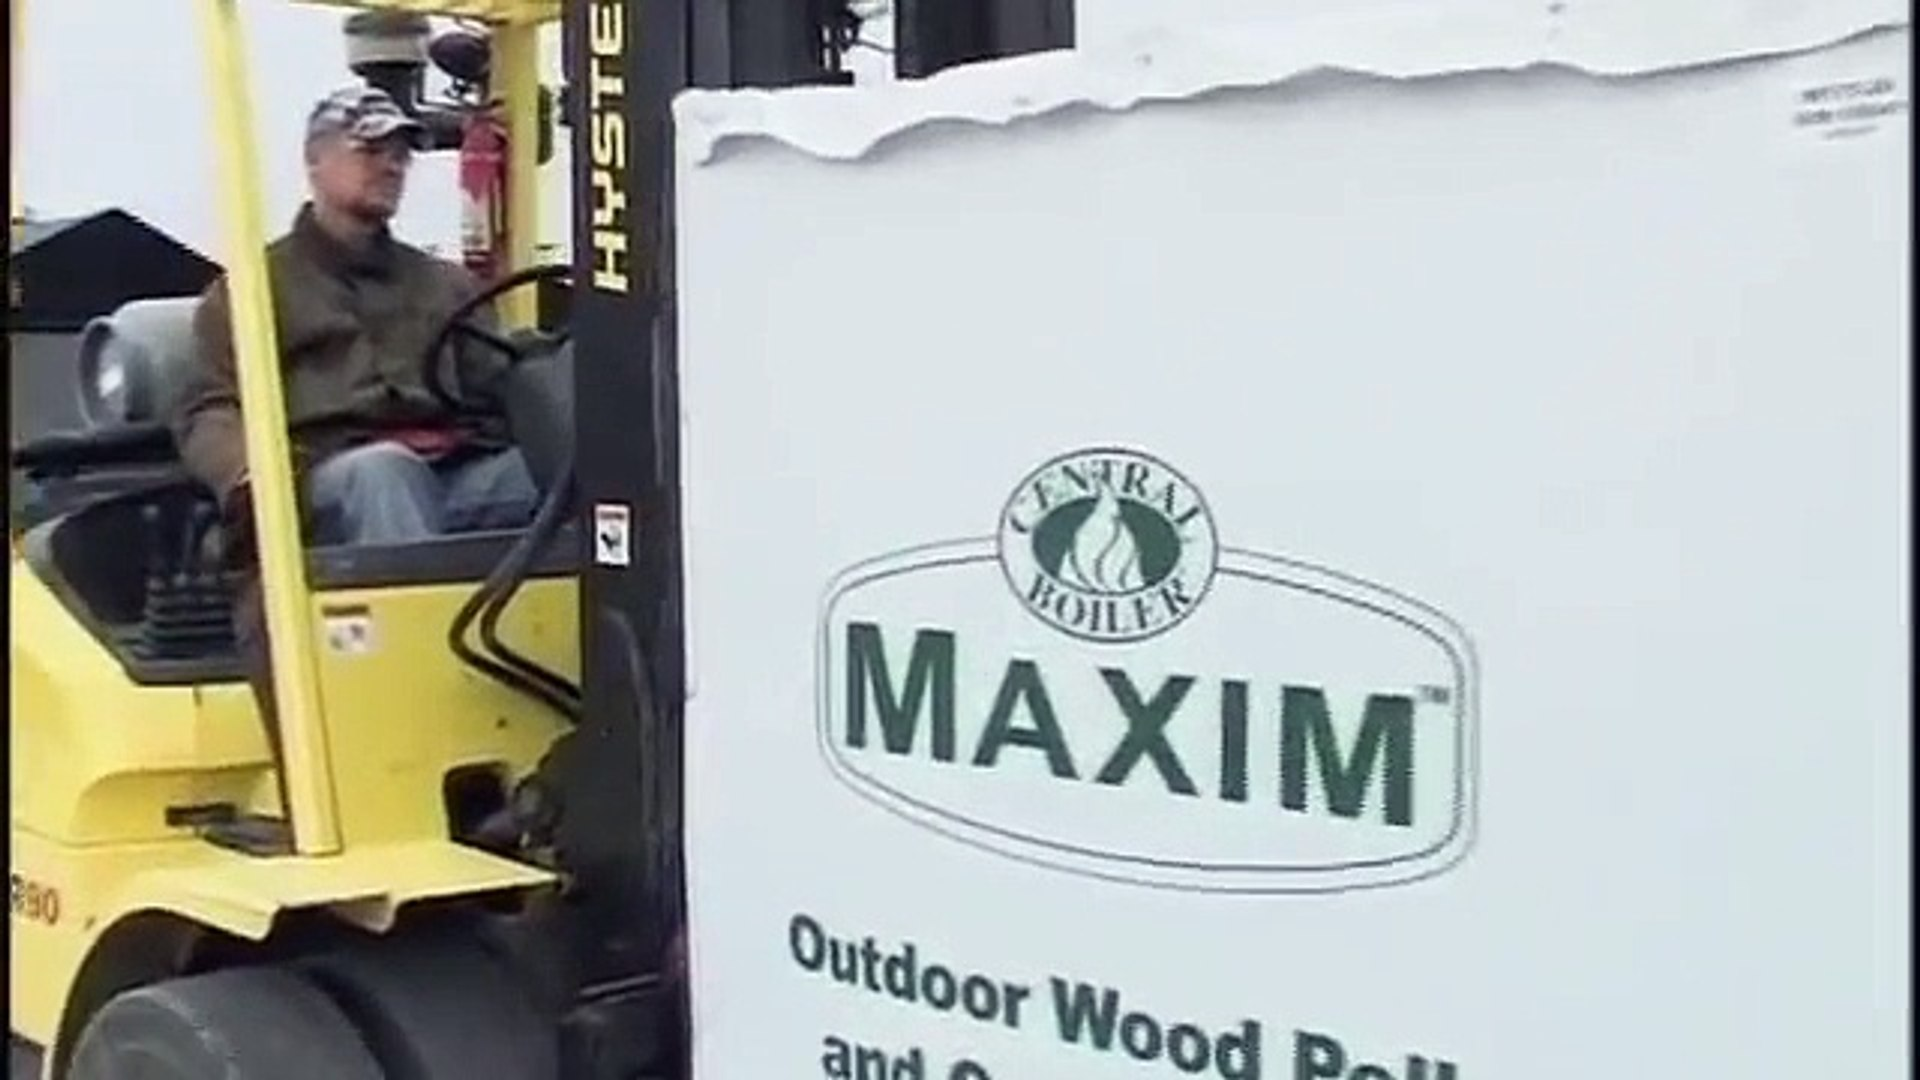 Central Boiler - Maxim Installation - Outdoor Wood Pellet Furnace